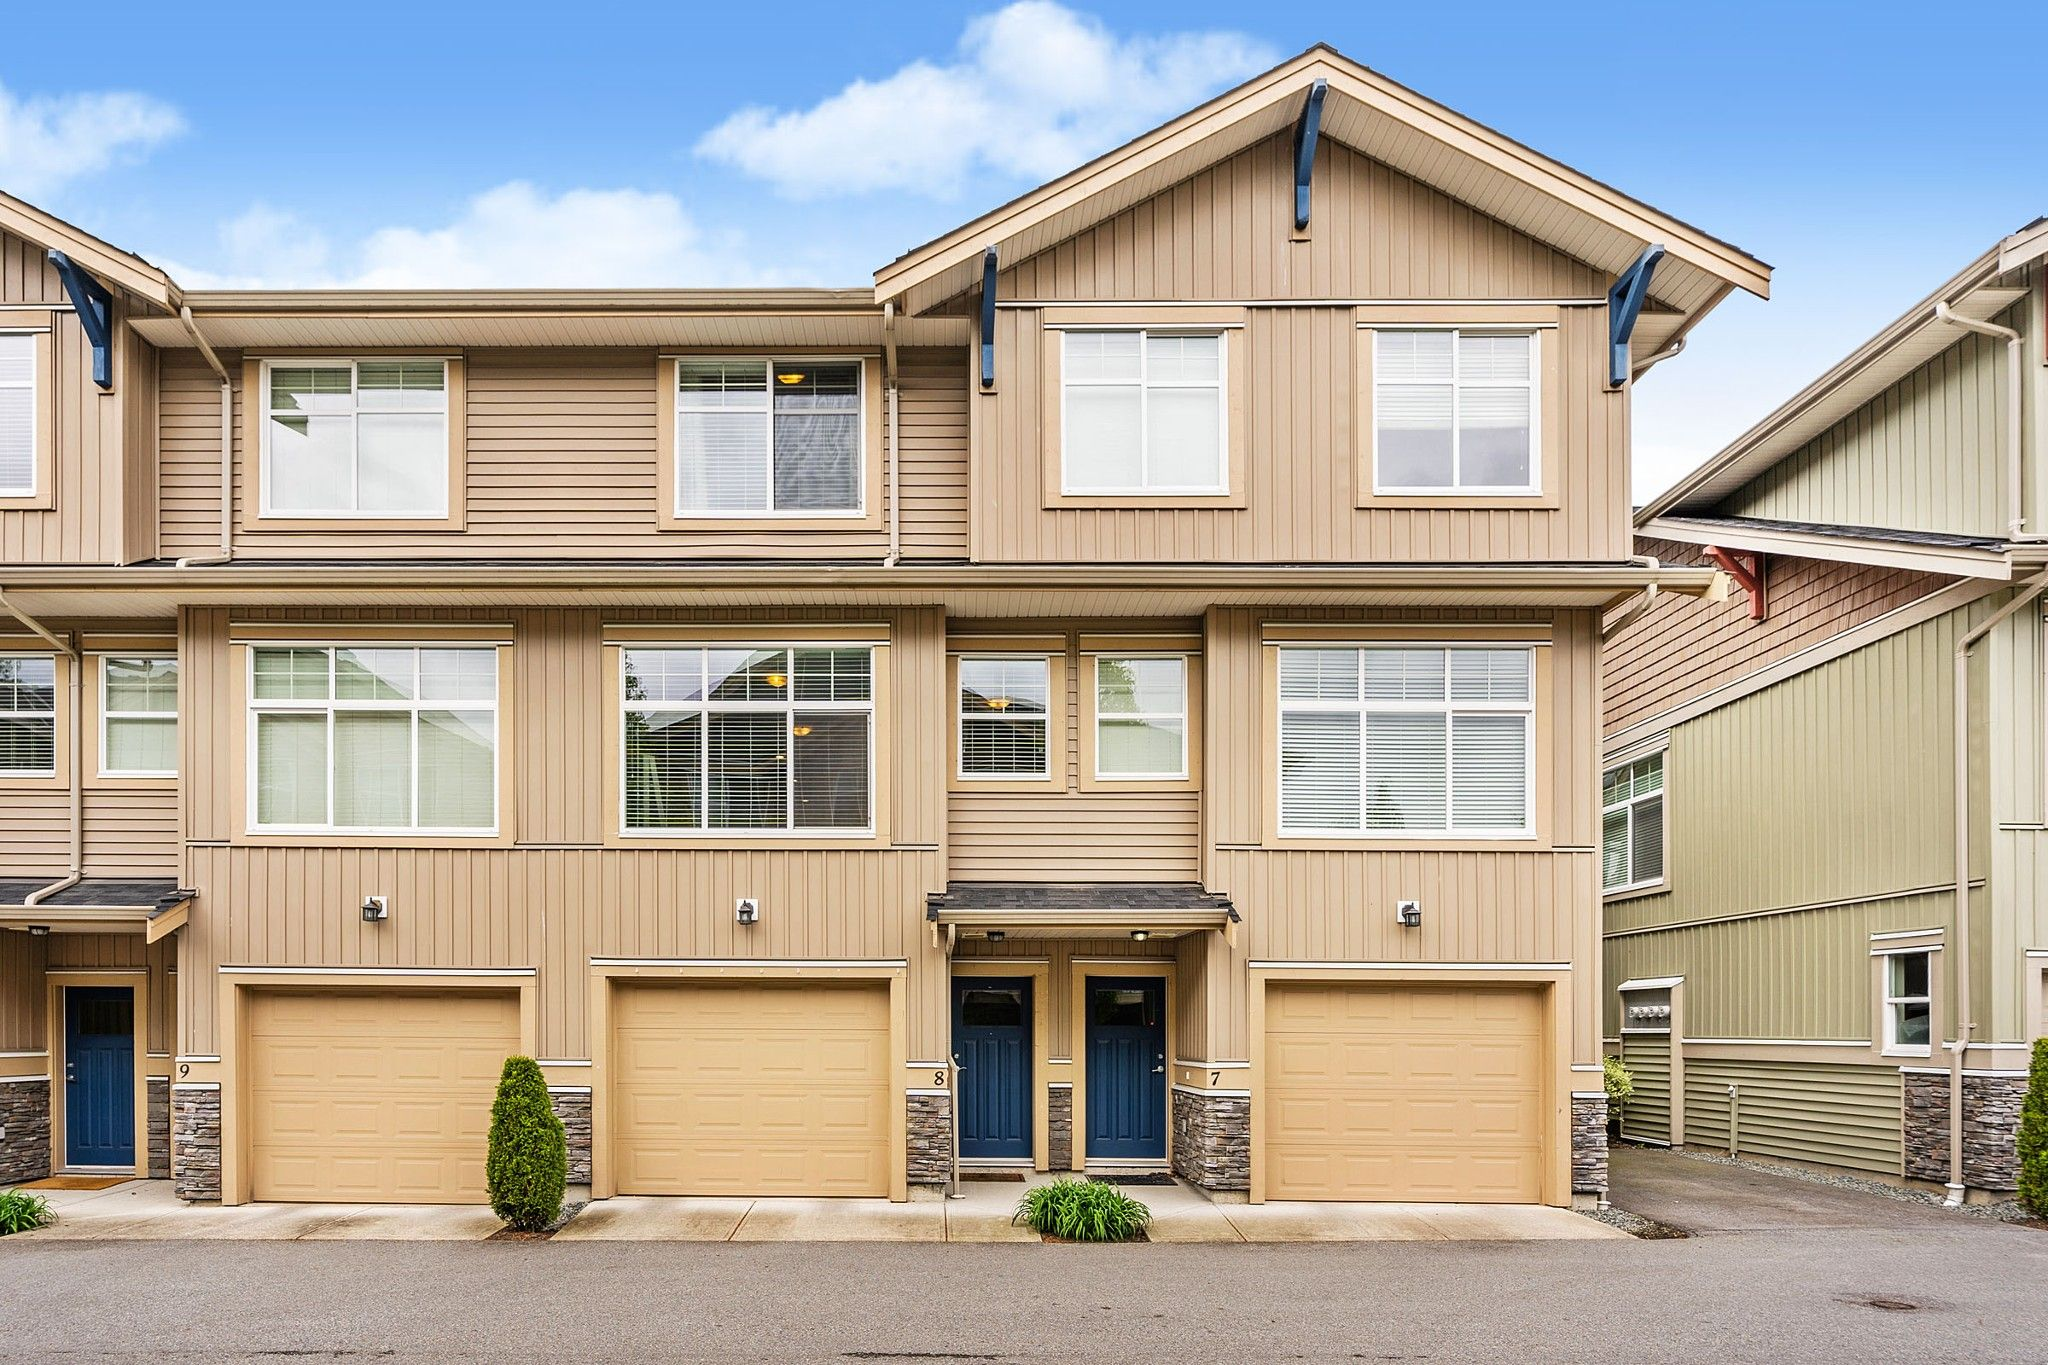 """Main Photo: 8 20966 77A Avenue in Langley: Willoughby Heights Townhouse for sale in """"Nature's Walk"""" : MLS®# R2576973"""